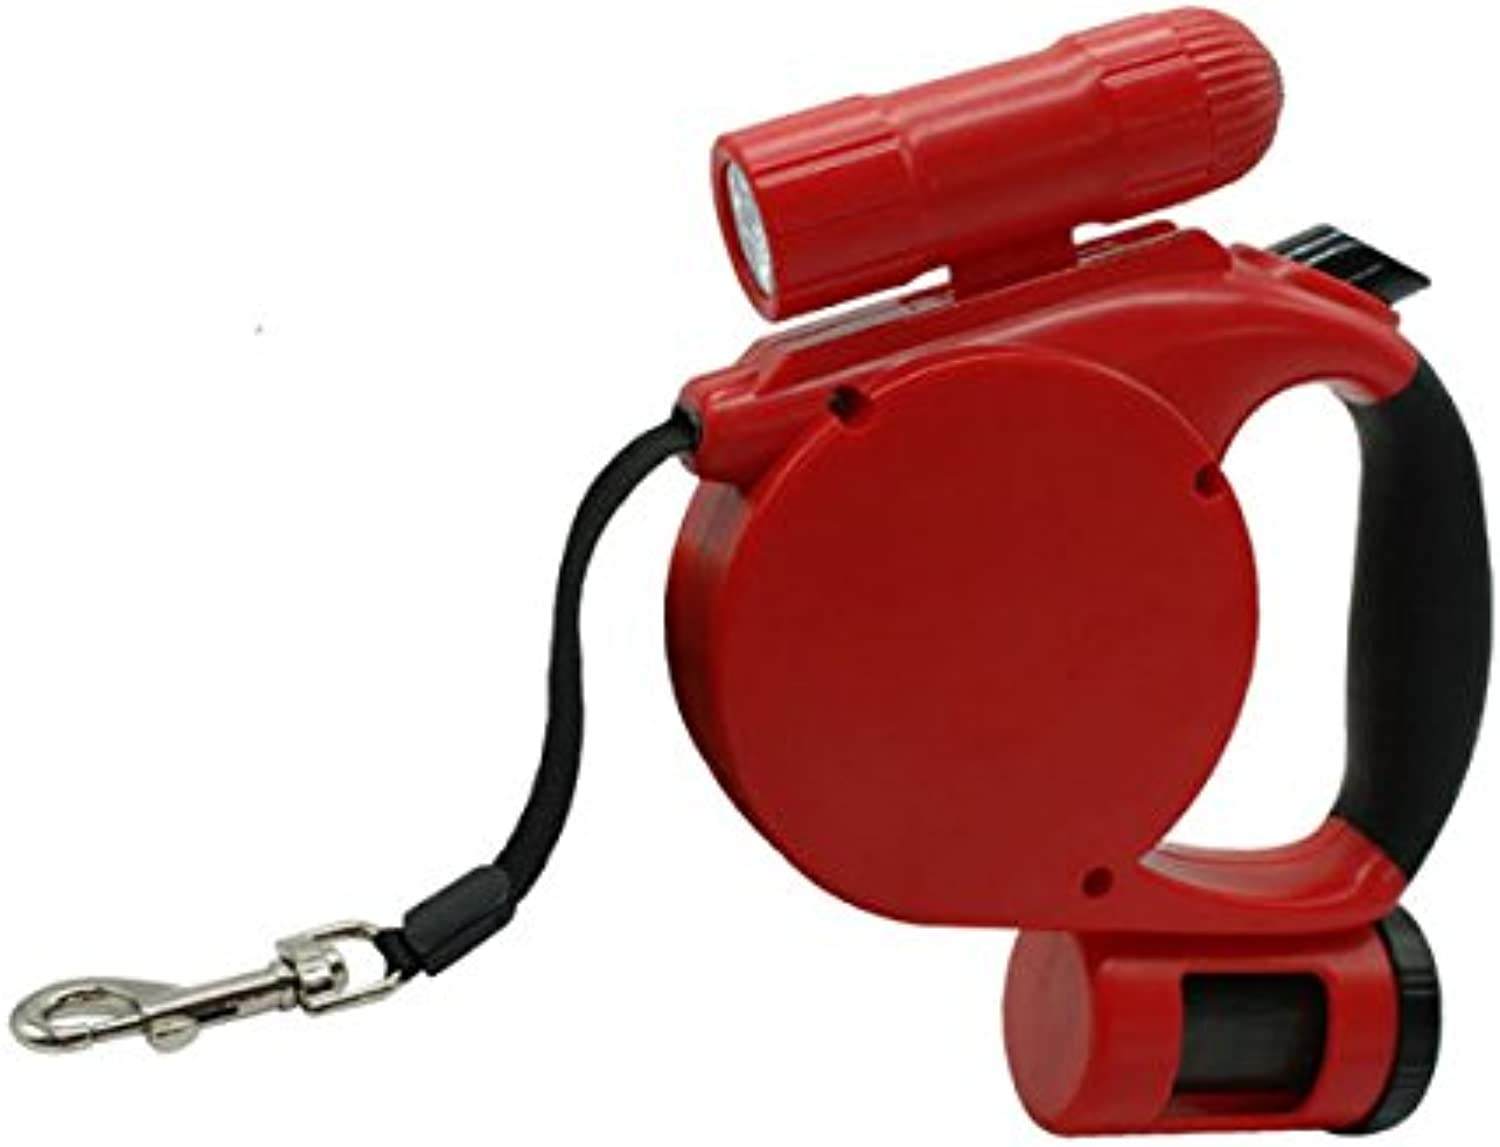 Hangang 3 in 1 Retractable Dog Leash (With LED Light + Bag Dispenser) These Durable Thick & Adjustable 15 Foot Leashes are The Best for Training Walking Jogging Small Medium or Large (red)